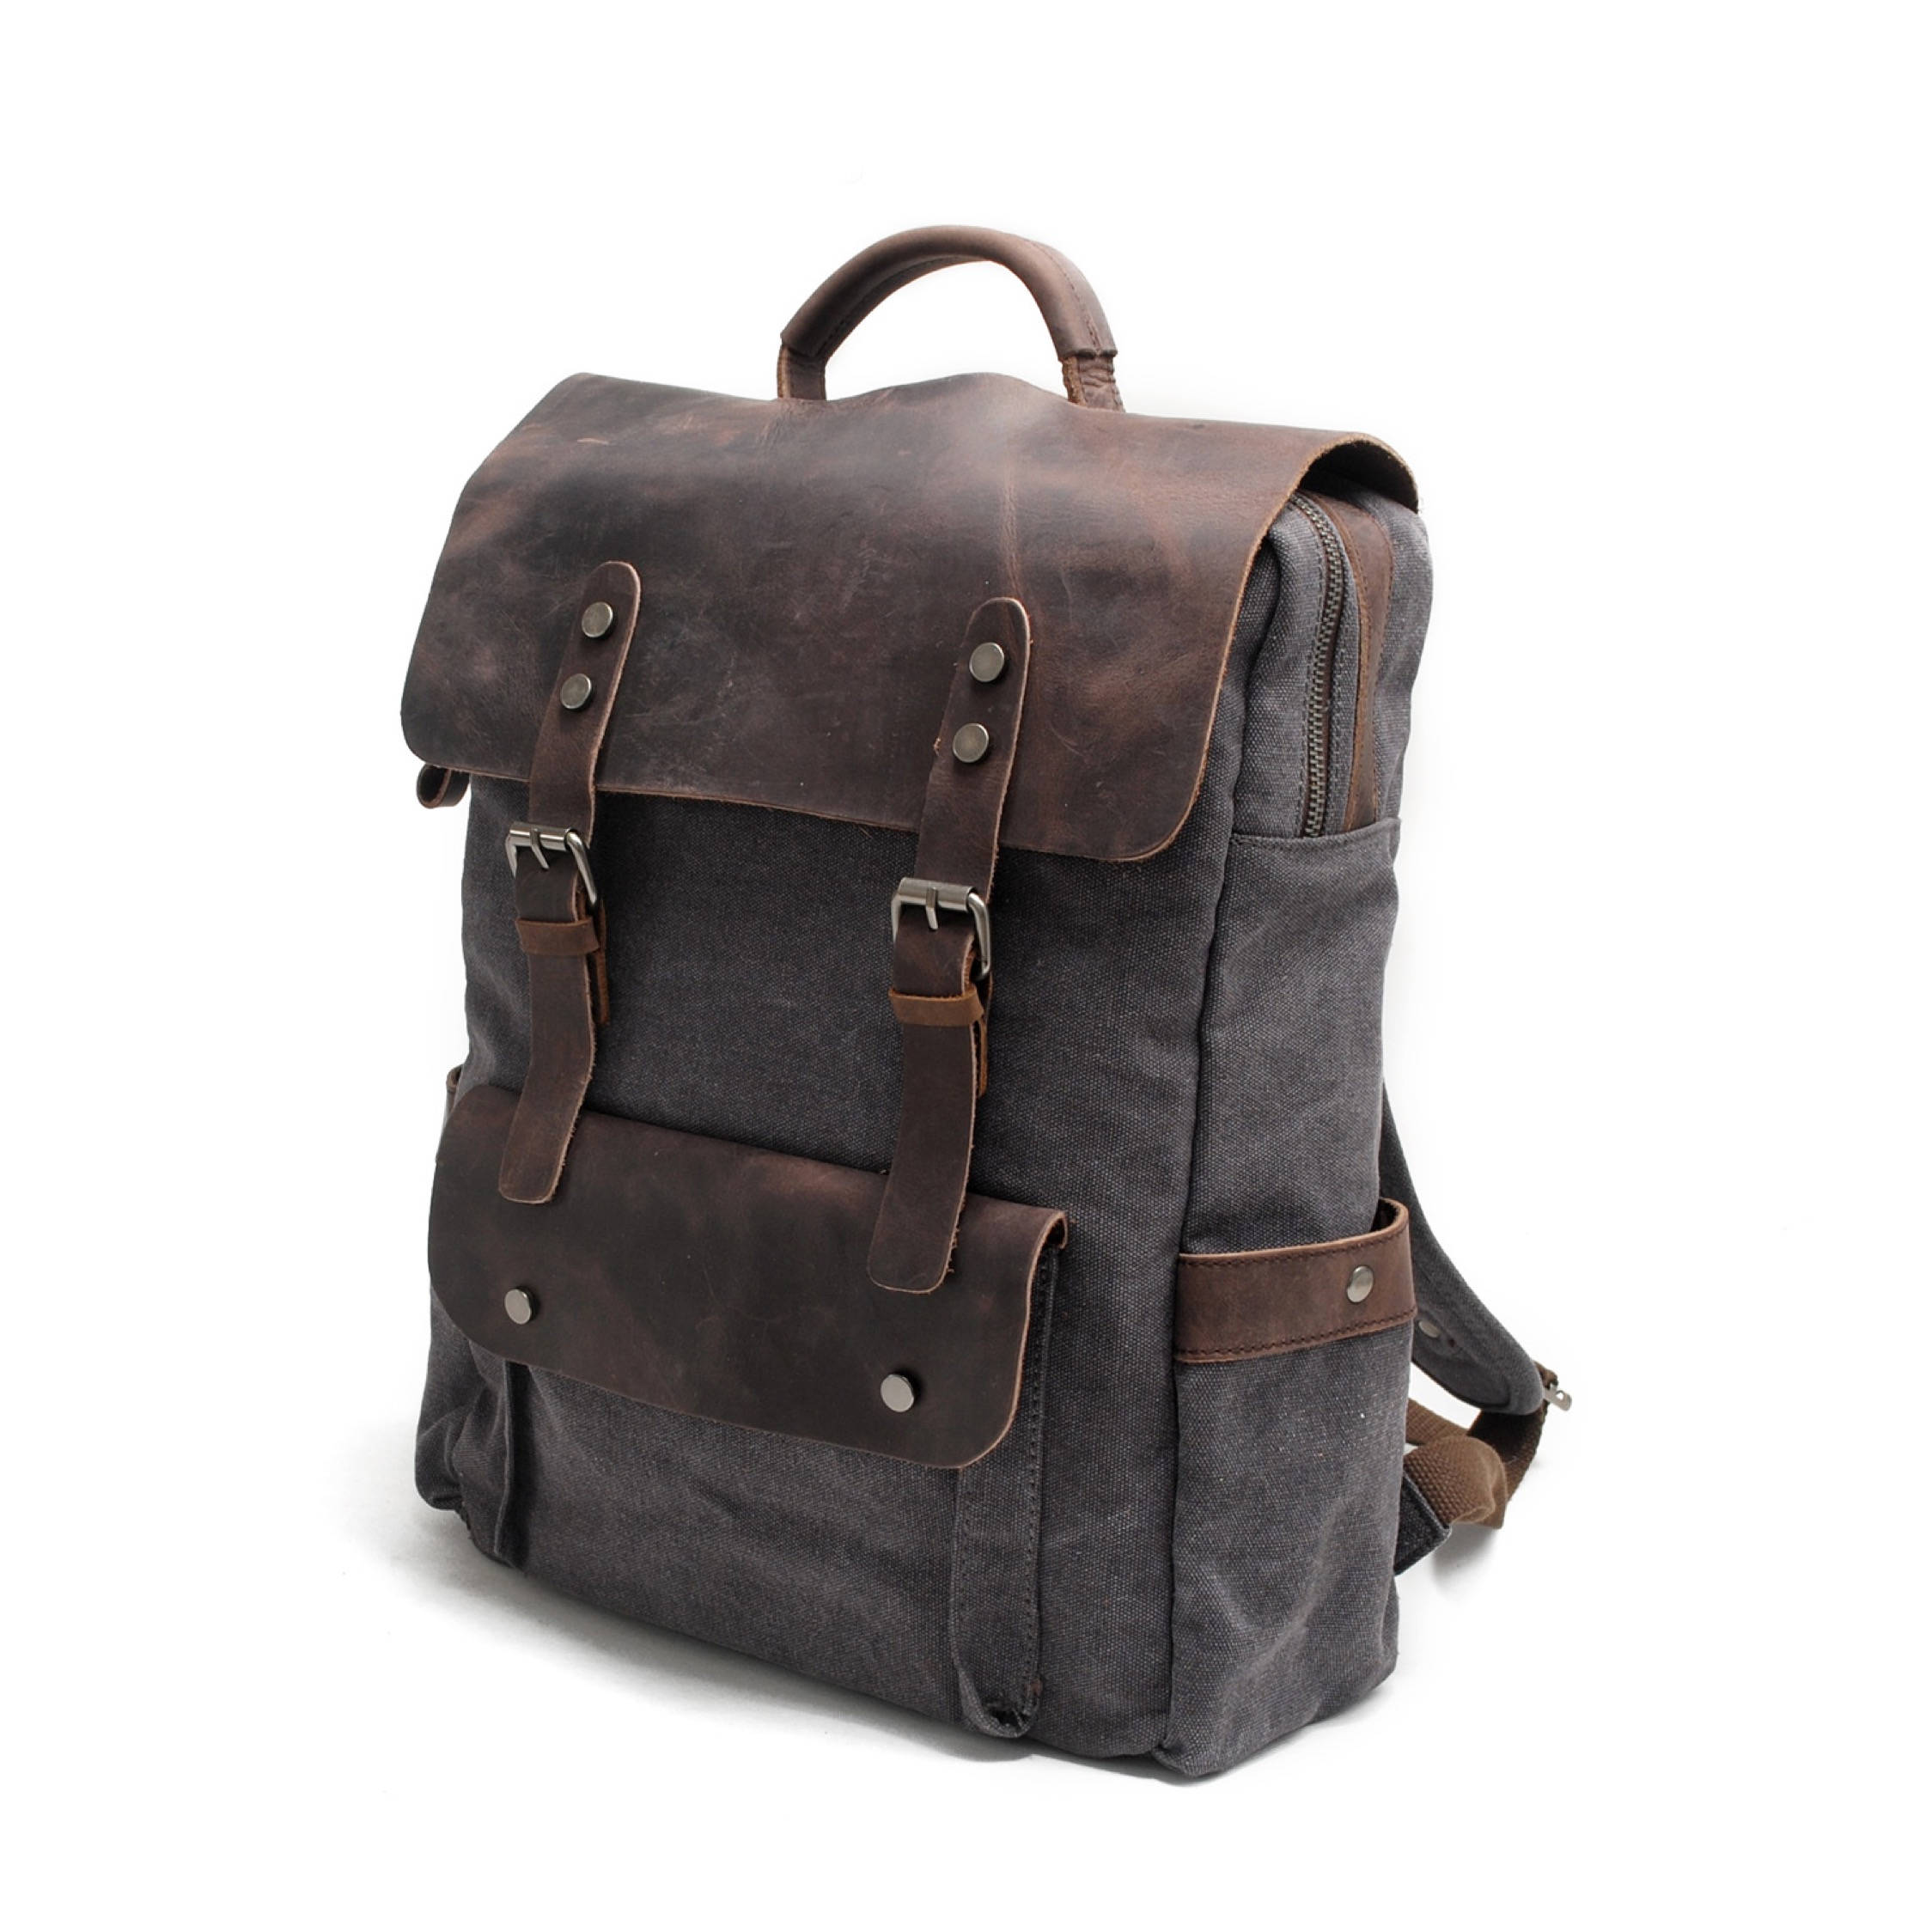 Hudson Canvas Backpack Grey The Leather Goods Co